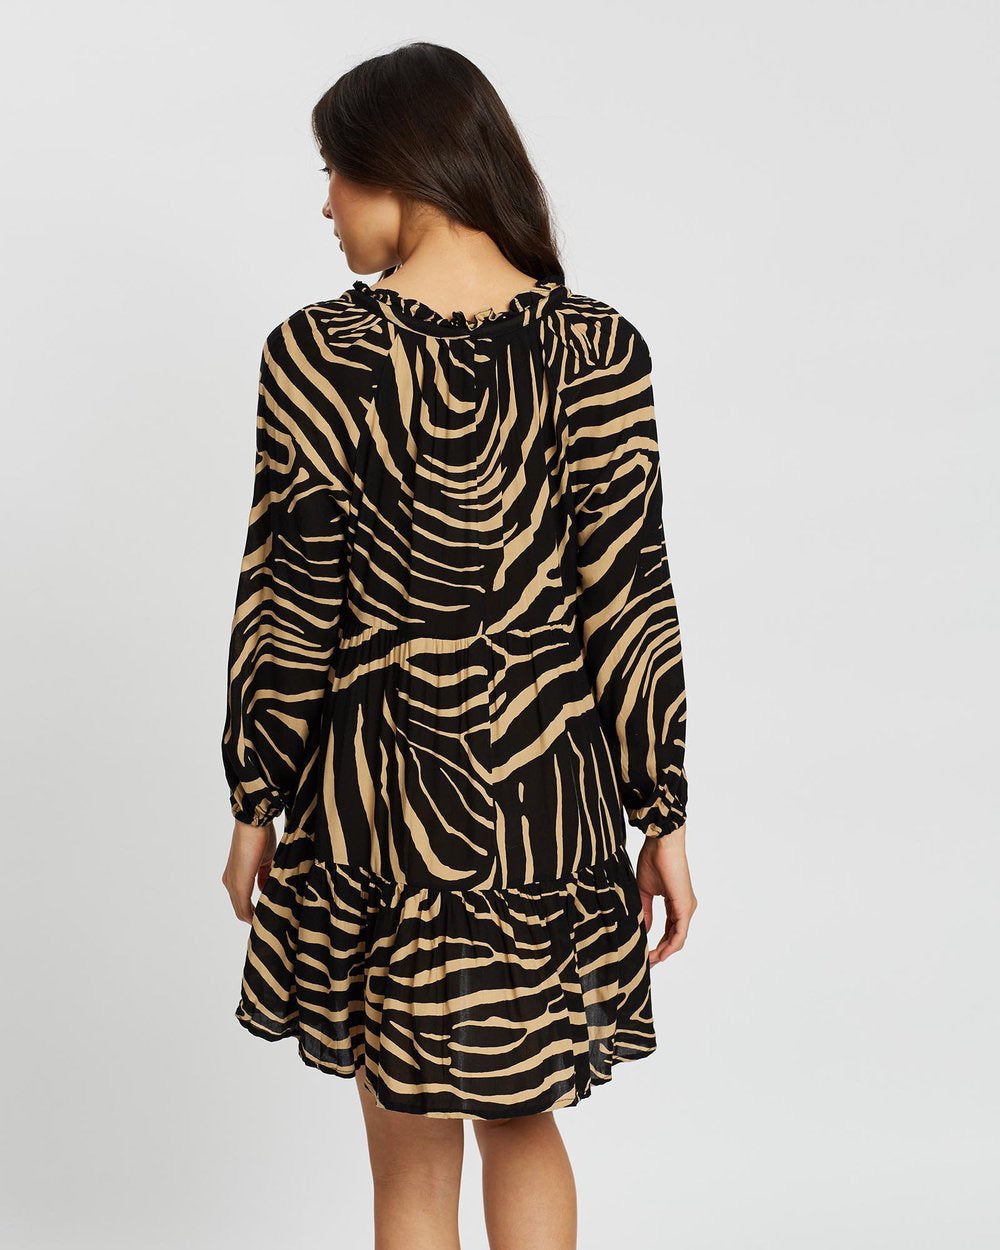 Zebra Cali Shirt Dress